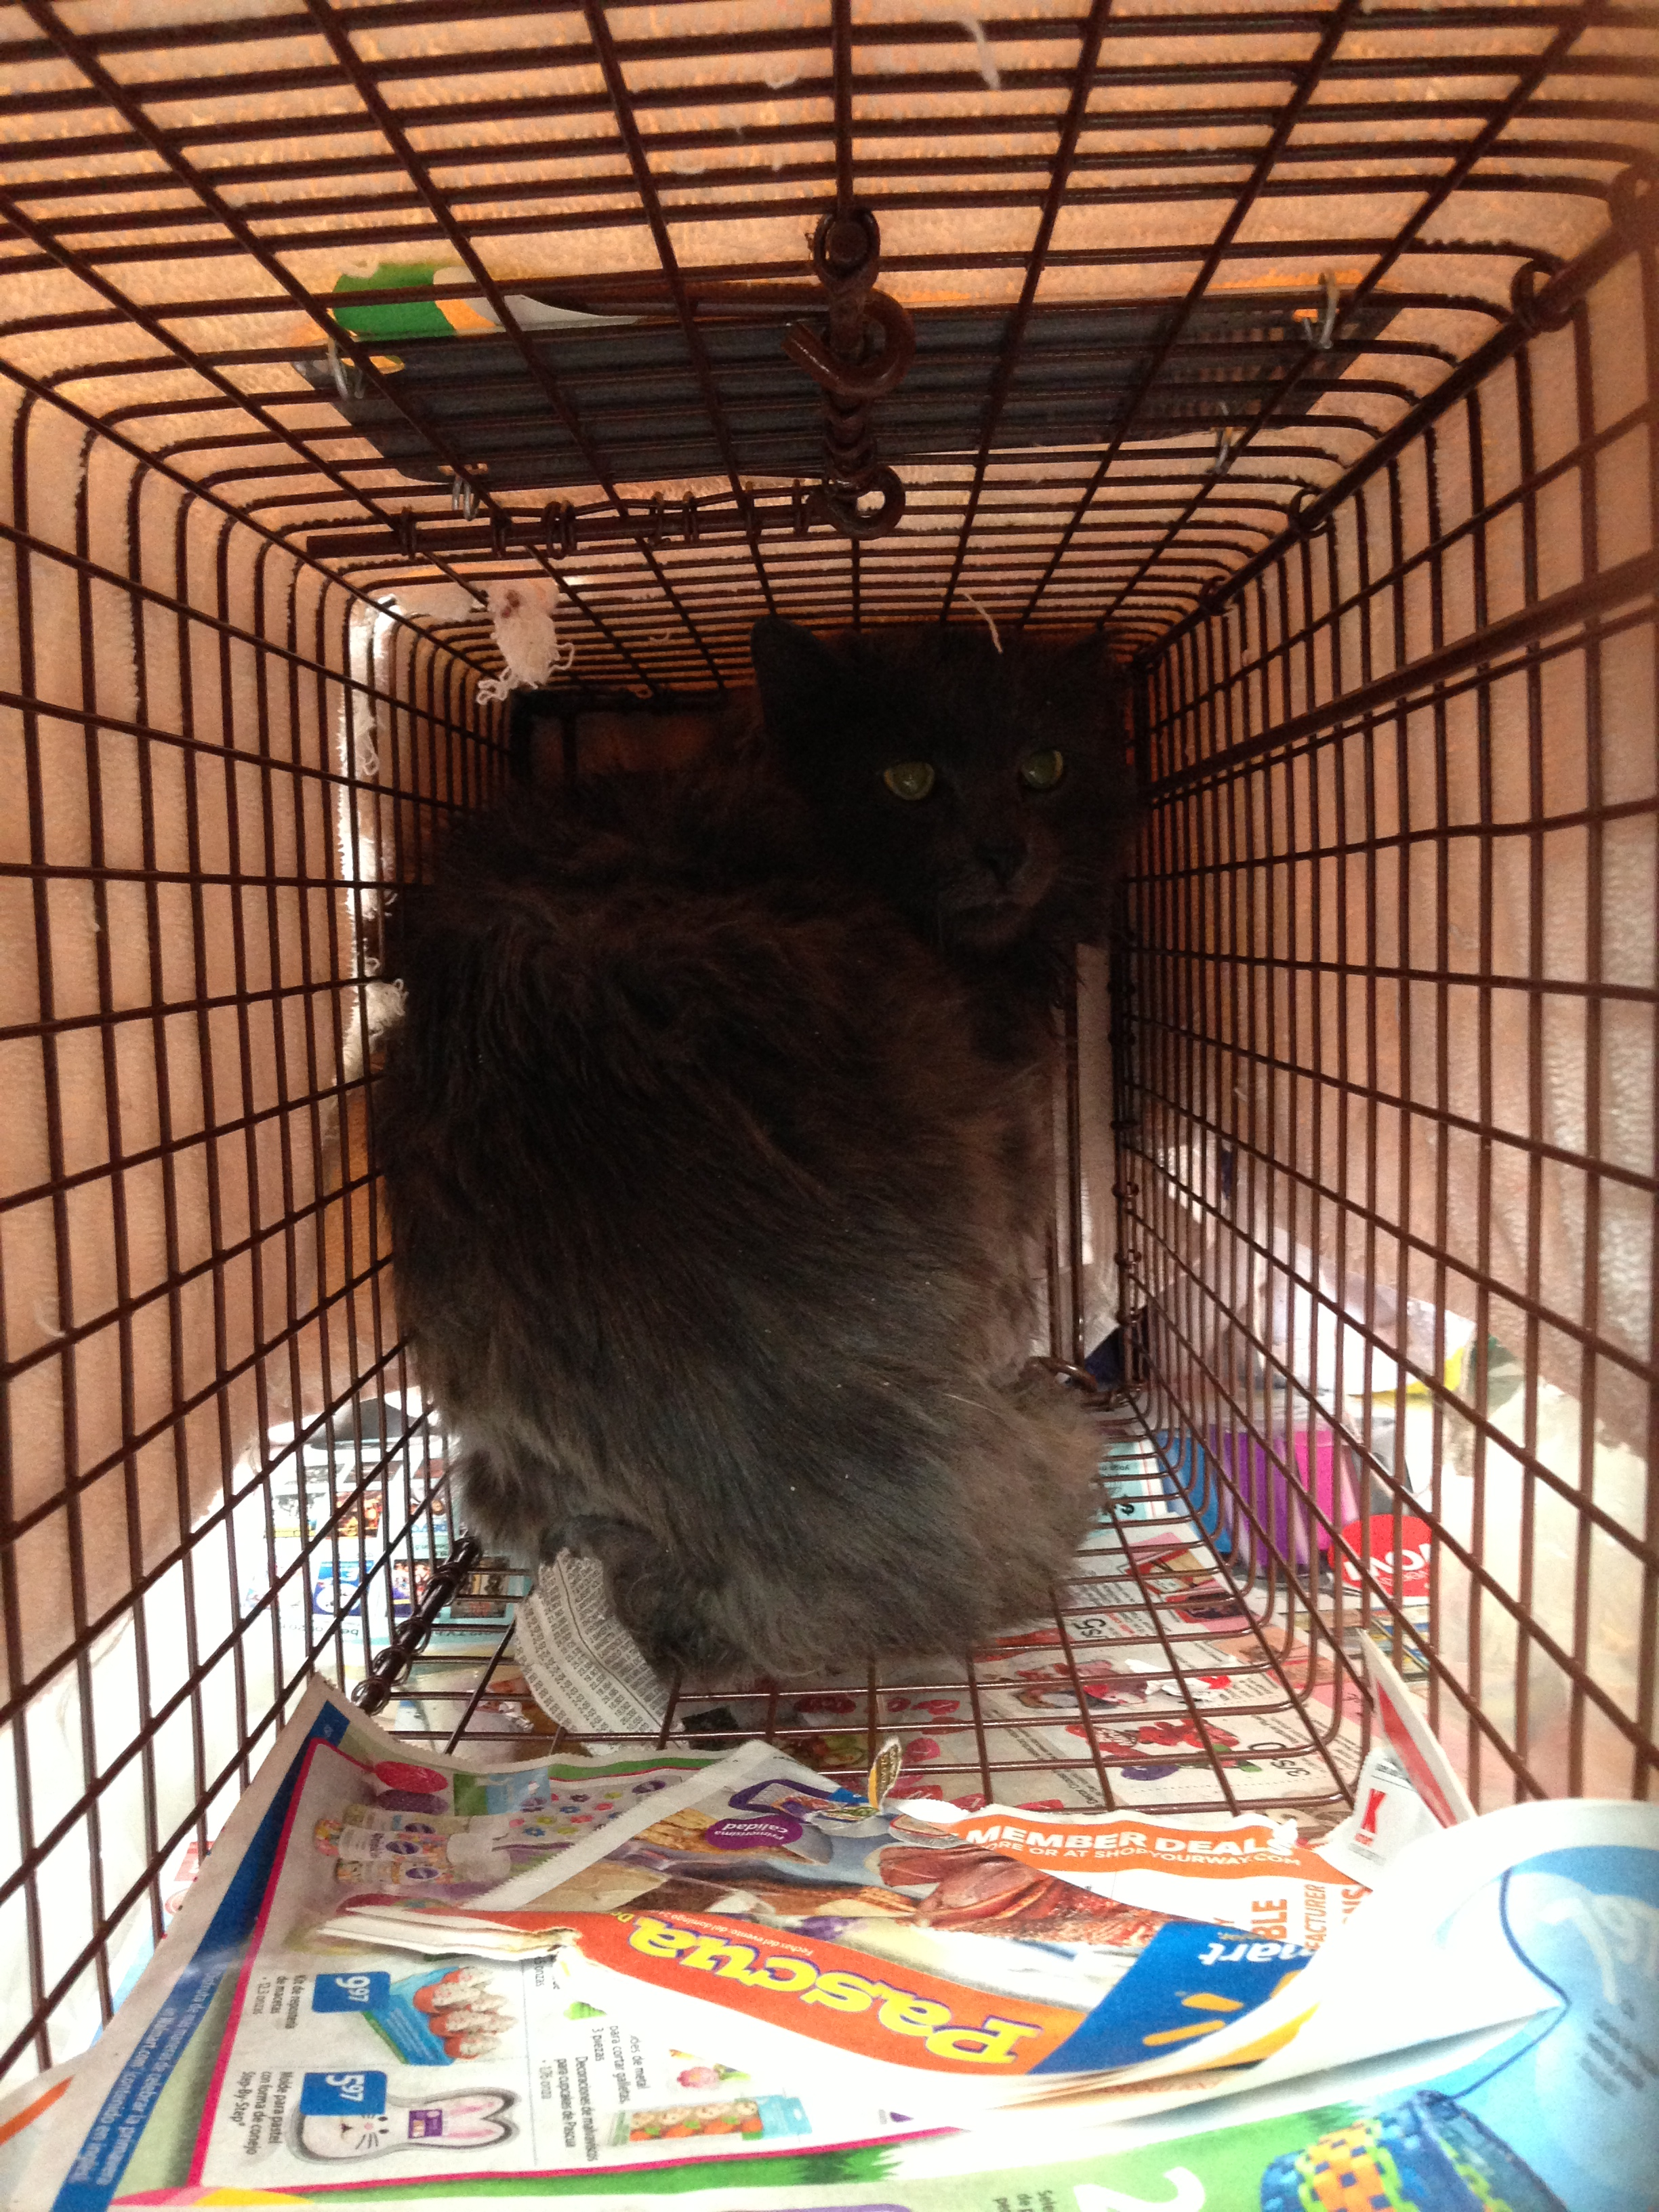 Puffy after being TNR'd